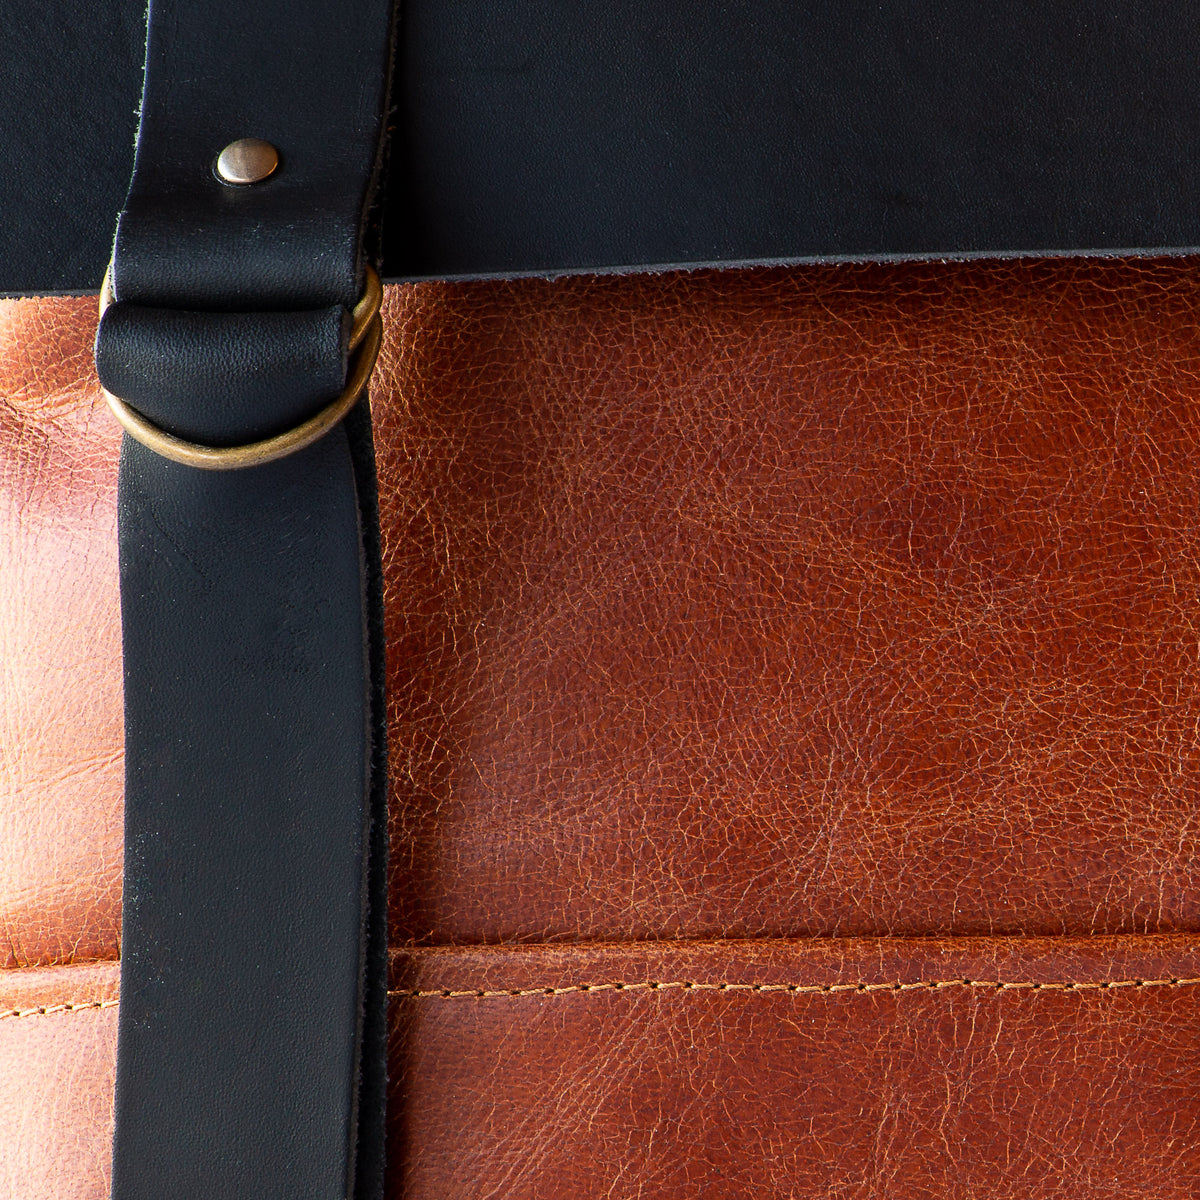 Leather Detail - Caramel & Black Handcrafted Leather Backpack / Crossbody Bag - Sold by Chic & Basta